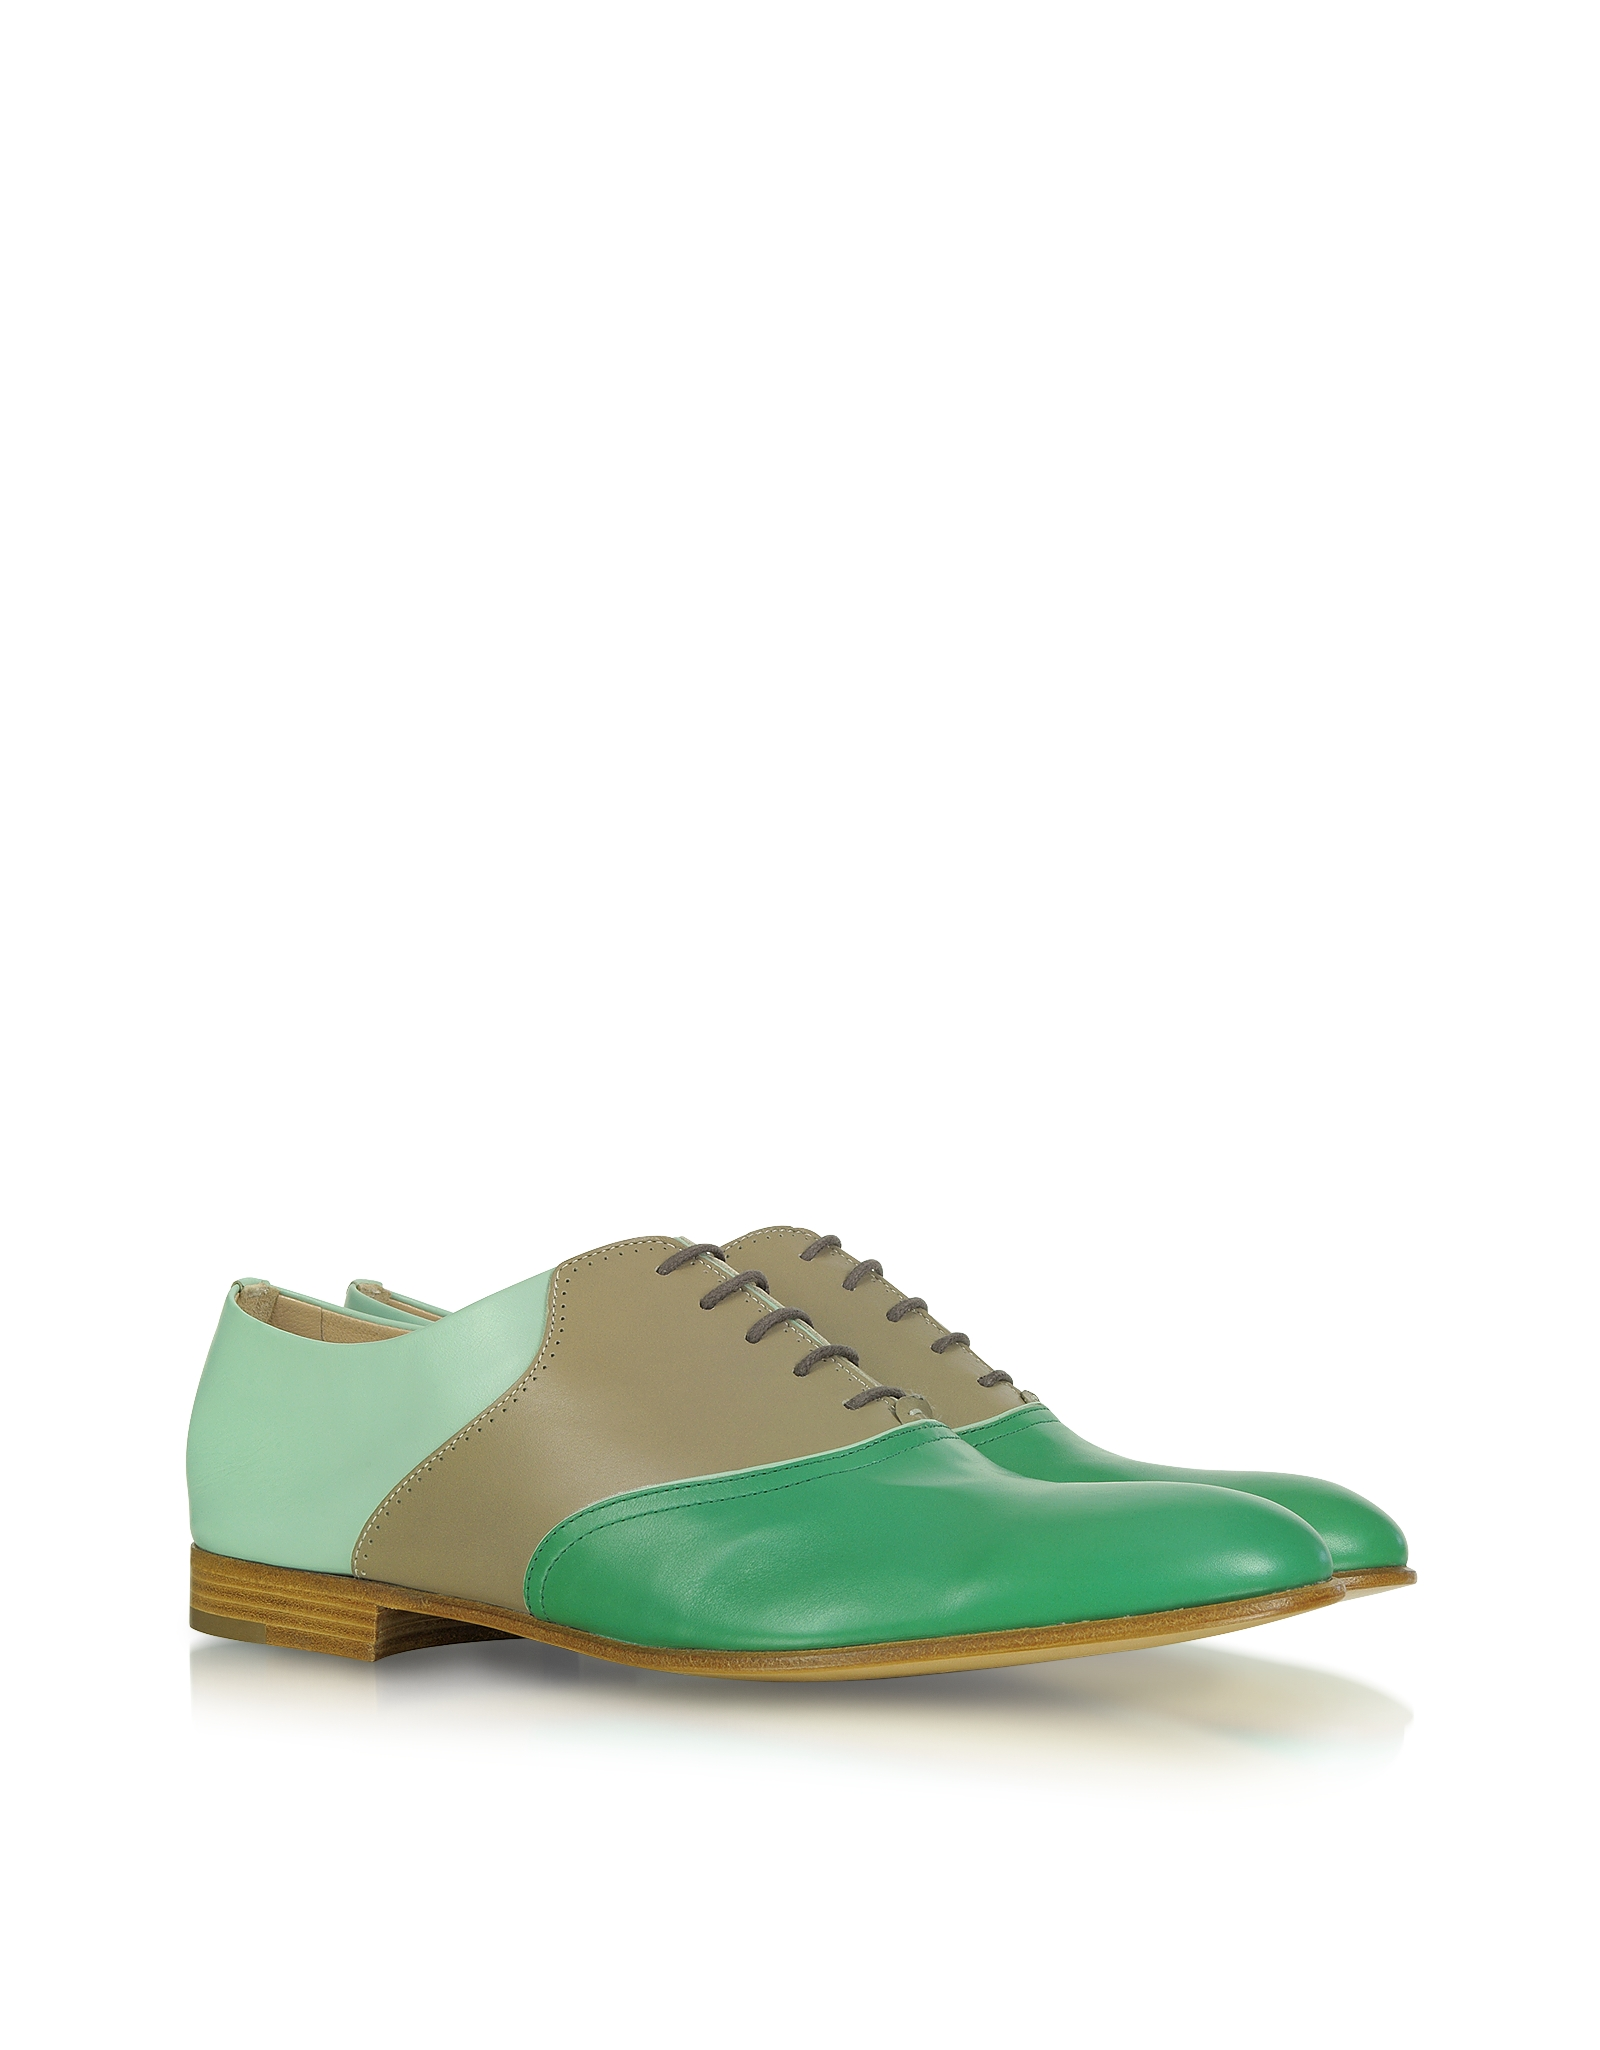 Fratelli Rossetti Color Block Leather Oxford Shoes In Green   Lyst